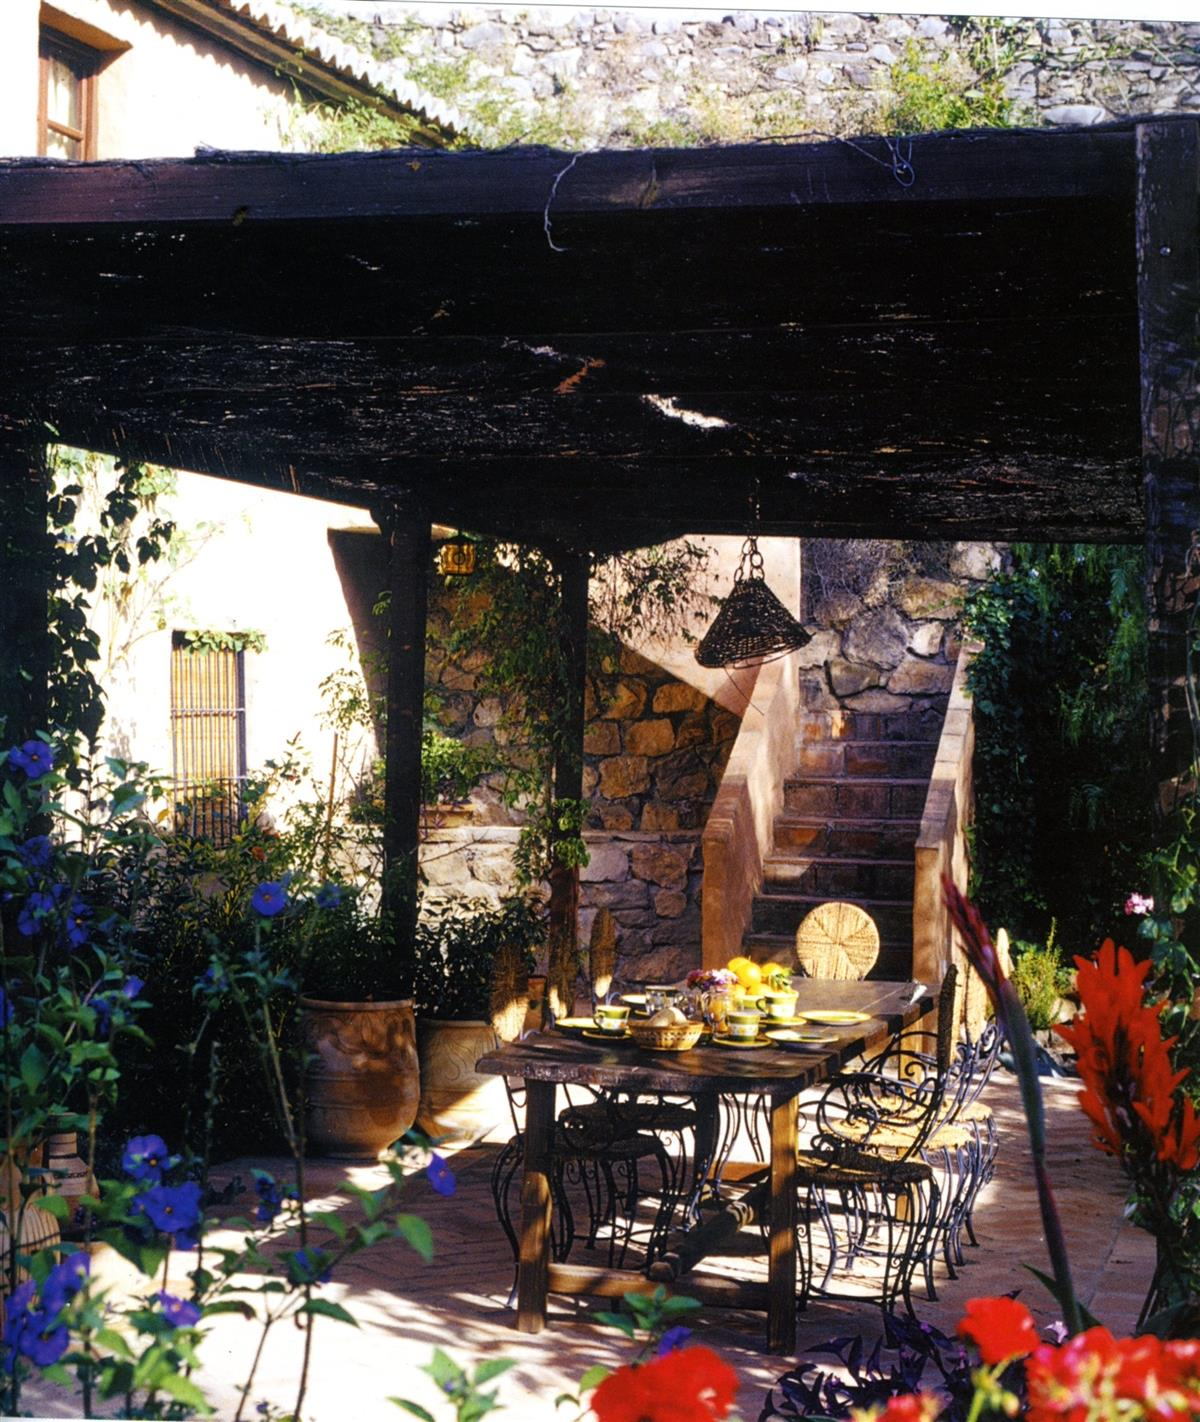 The rear patio outside dinning ares